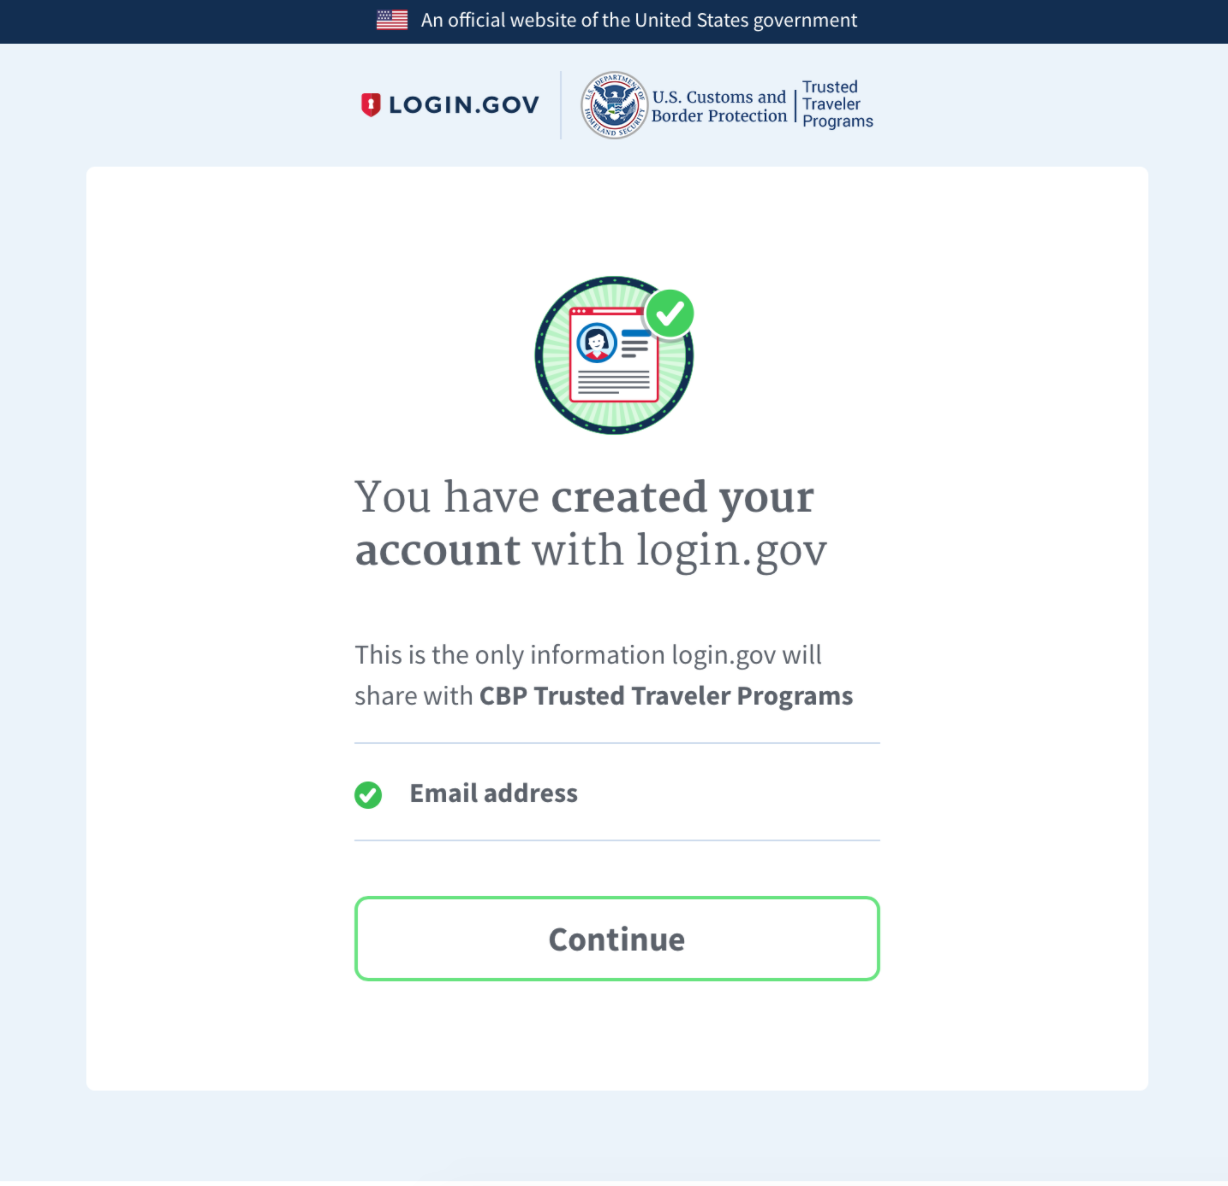 login gov | I'm trying to sign in, but it doesn't work / I'm trying